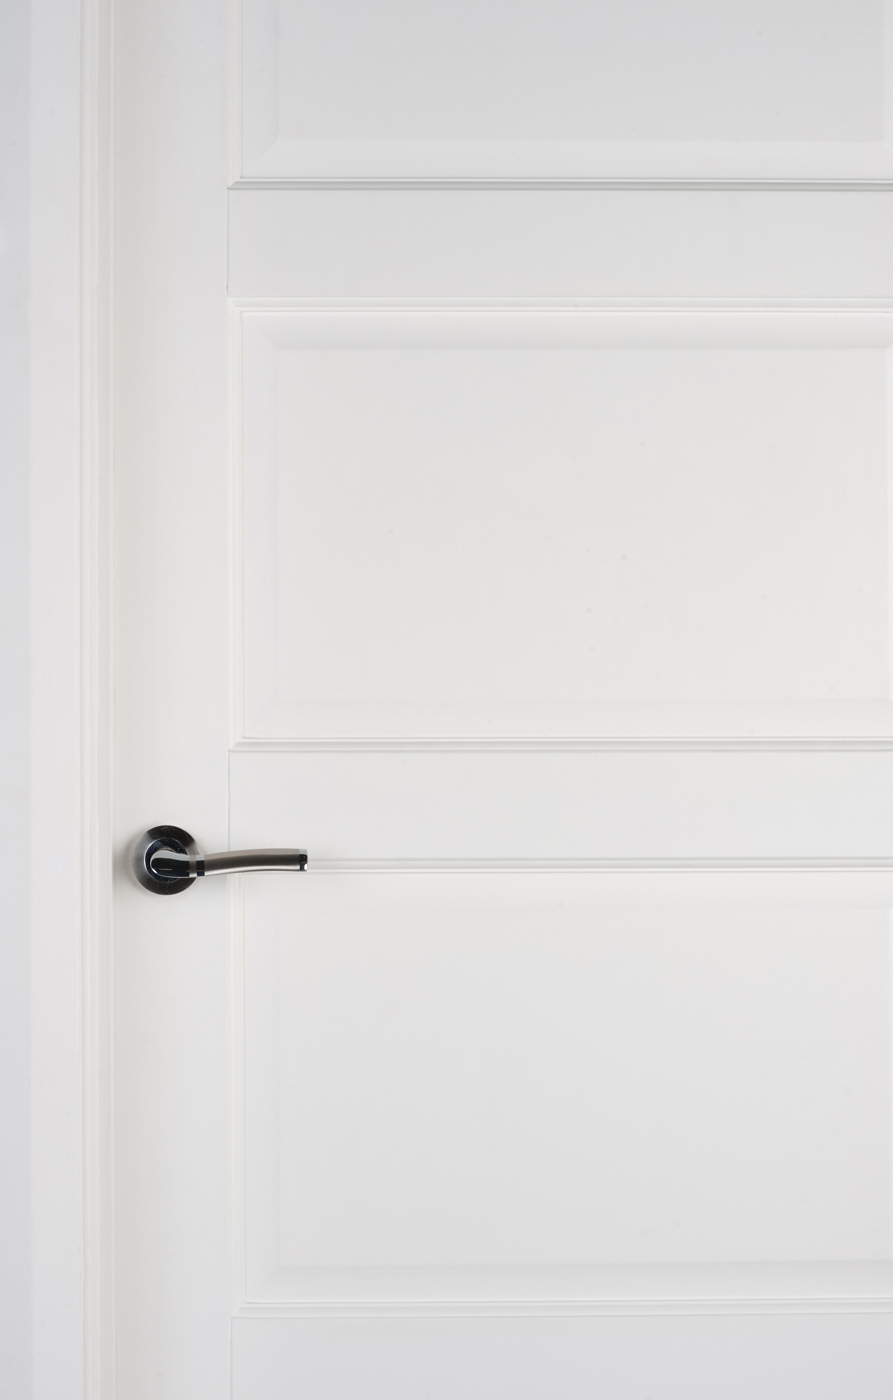 Contemporary 4 Panel White Primed Door 40mm Internal